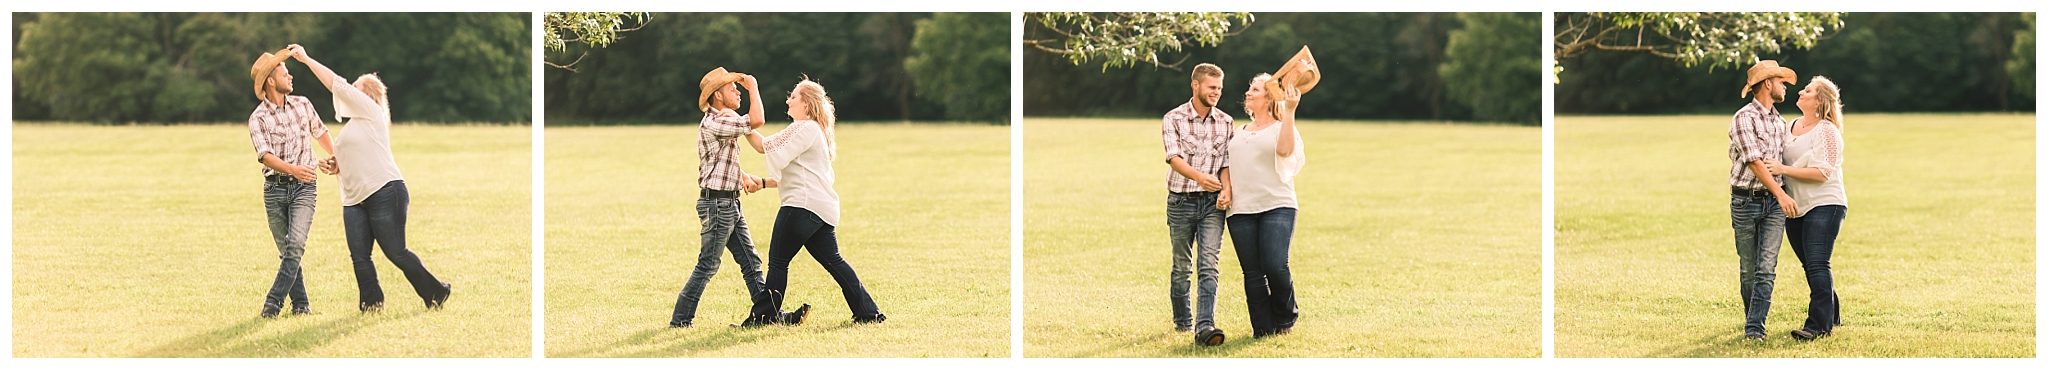 lafayette indiana sunset engagement photography county fair adventure new adventure productions_0669.jpg